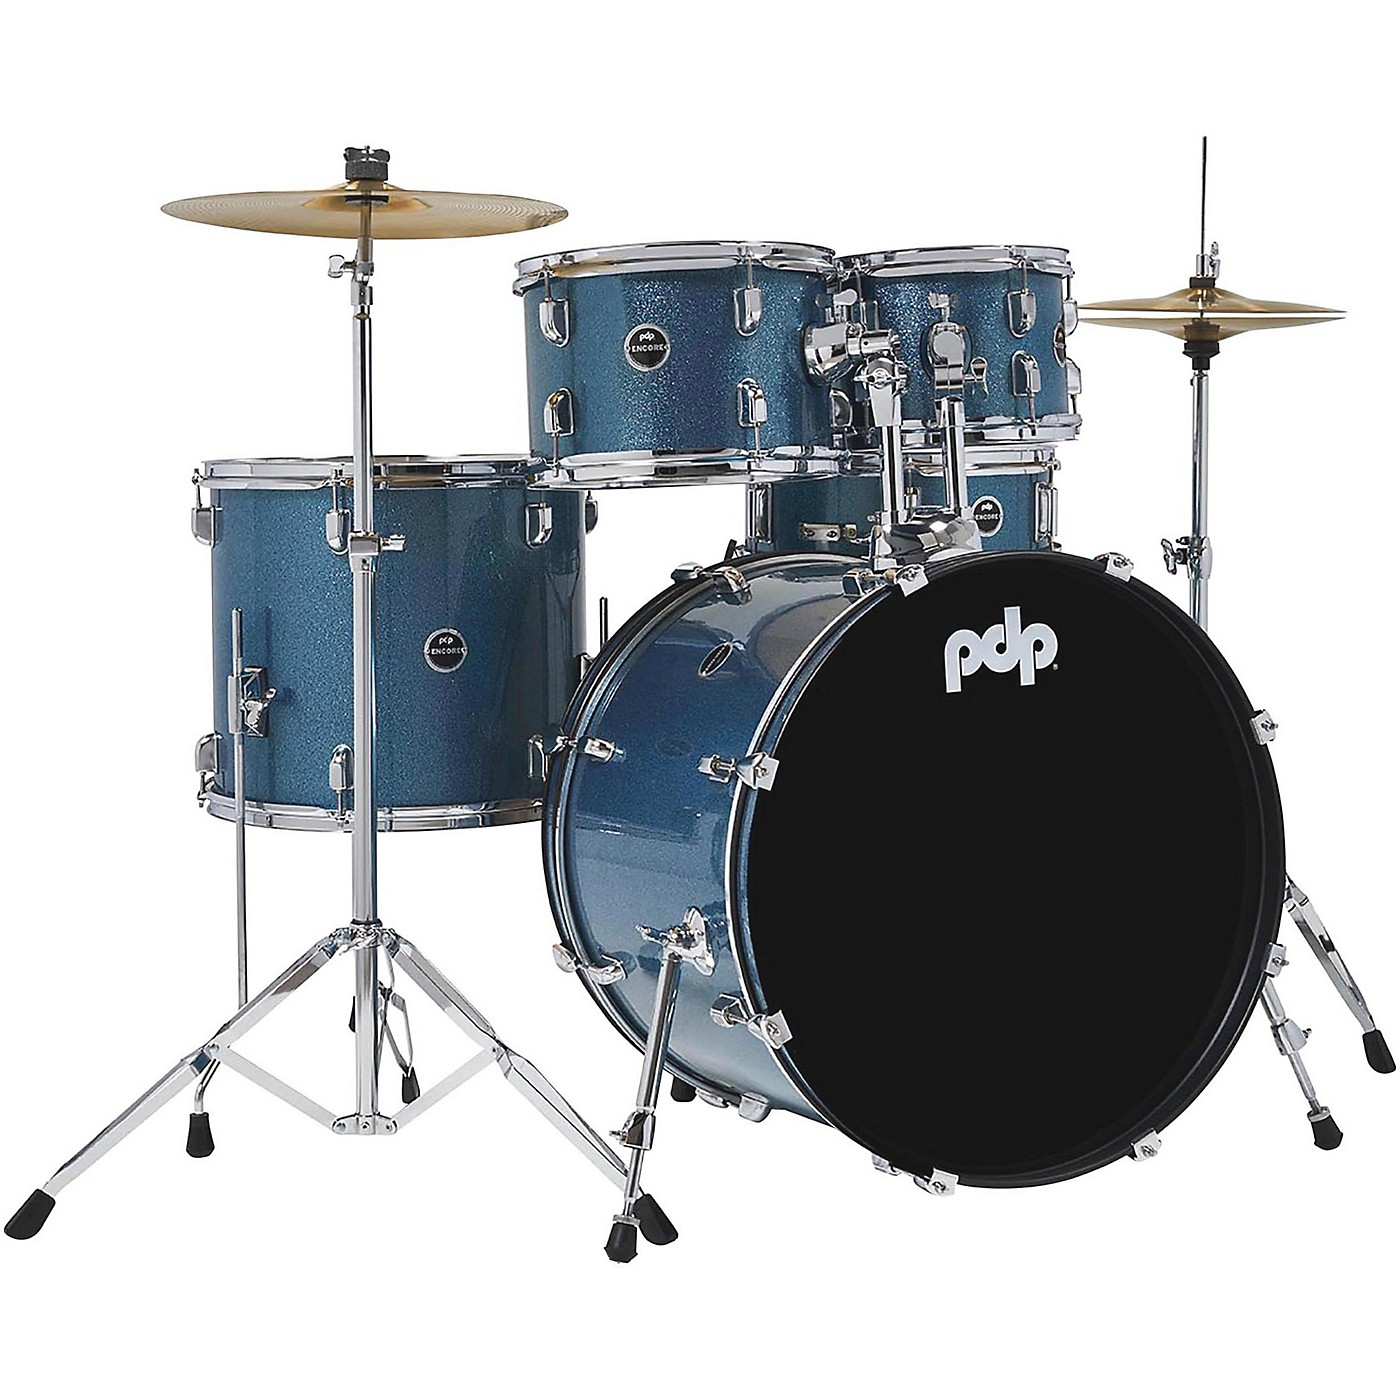 PDP by DW Encore Complete 5-Piece Drum Set With Chrome Hardware and Cymbals thumbnail